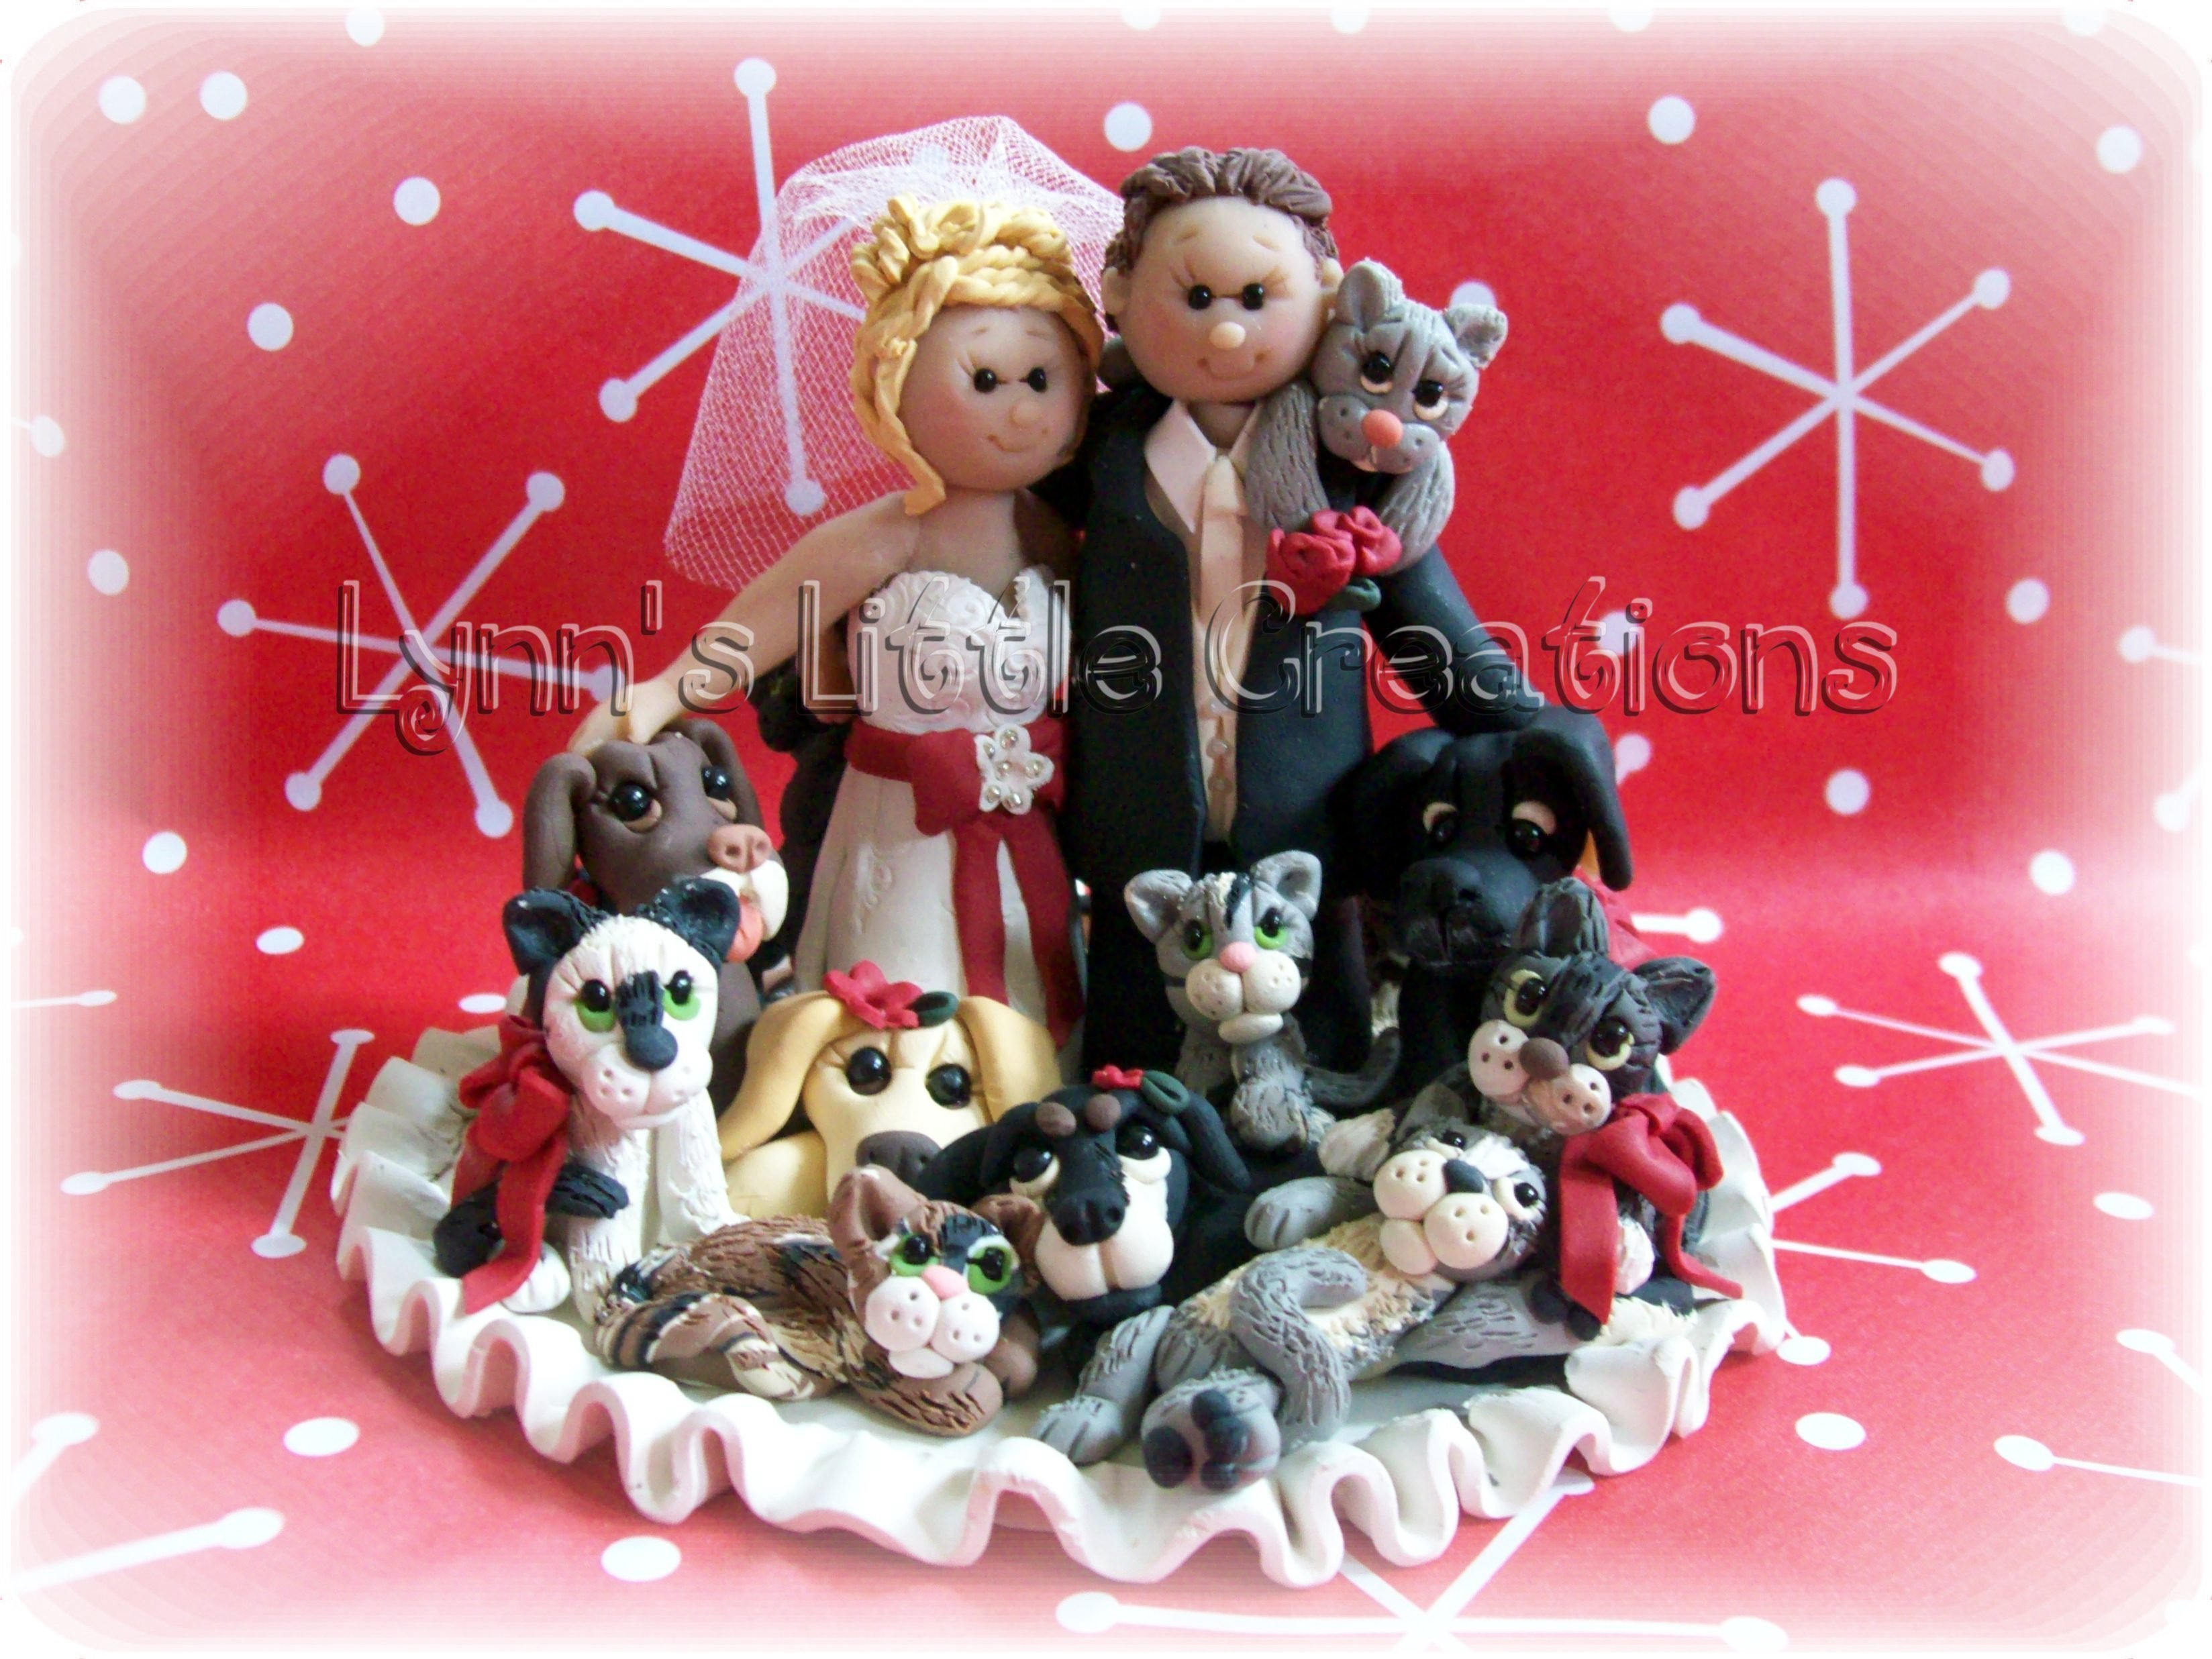 Cakes, cake, Book, Topper, Guest, Center, Piece, Lynns little creations, Pet